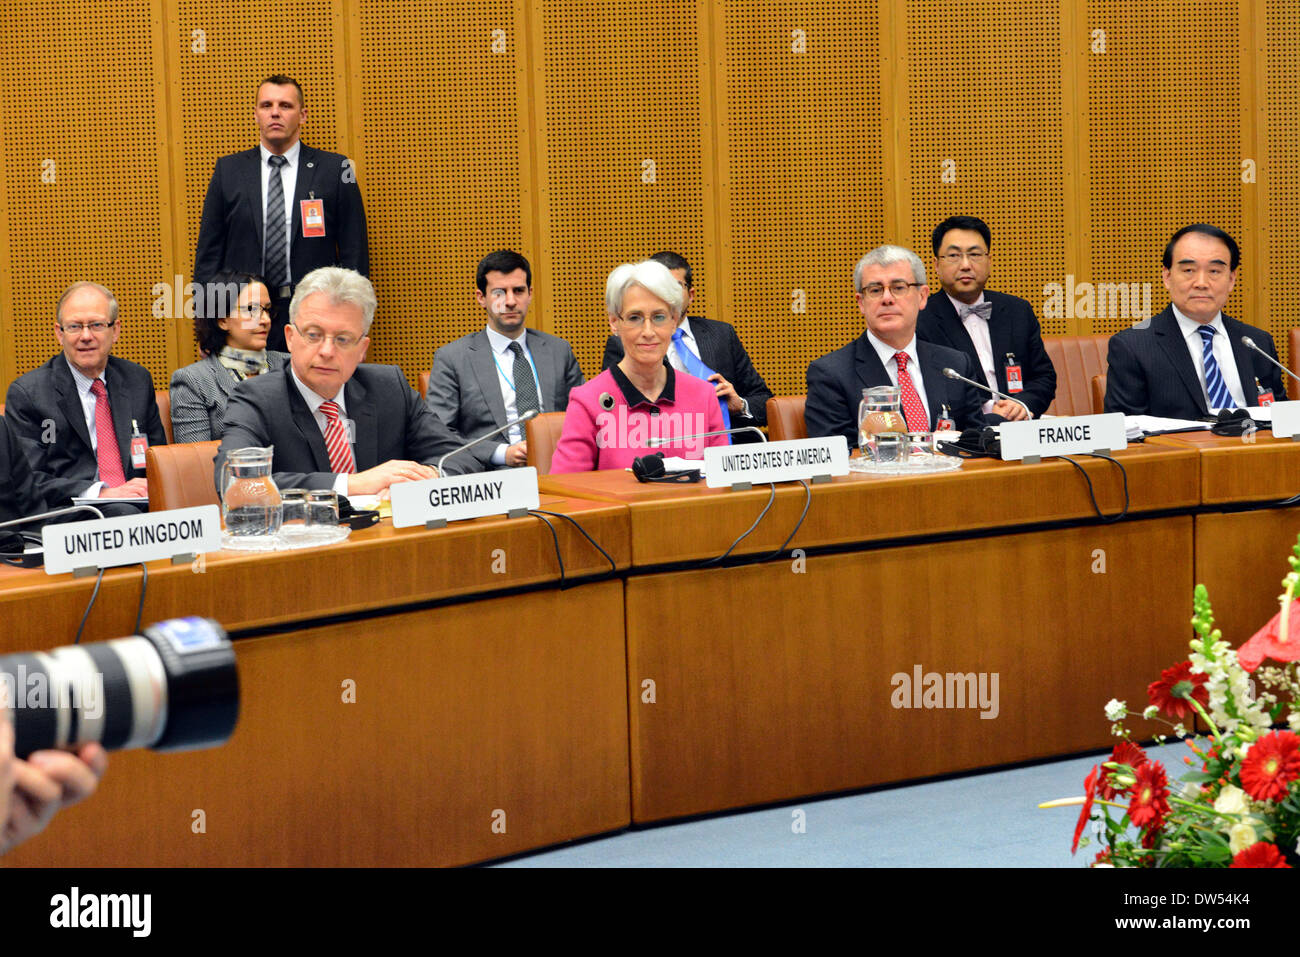 Under Secretary Sherman Leads the U.S. Delegation at Iran Talks in Vienna - Stock Image